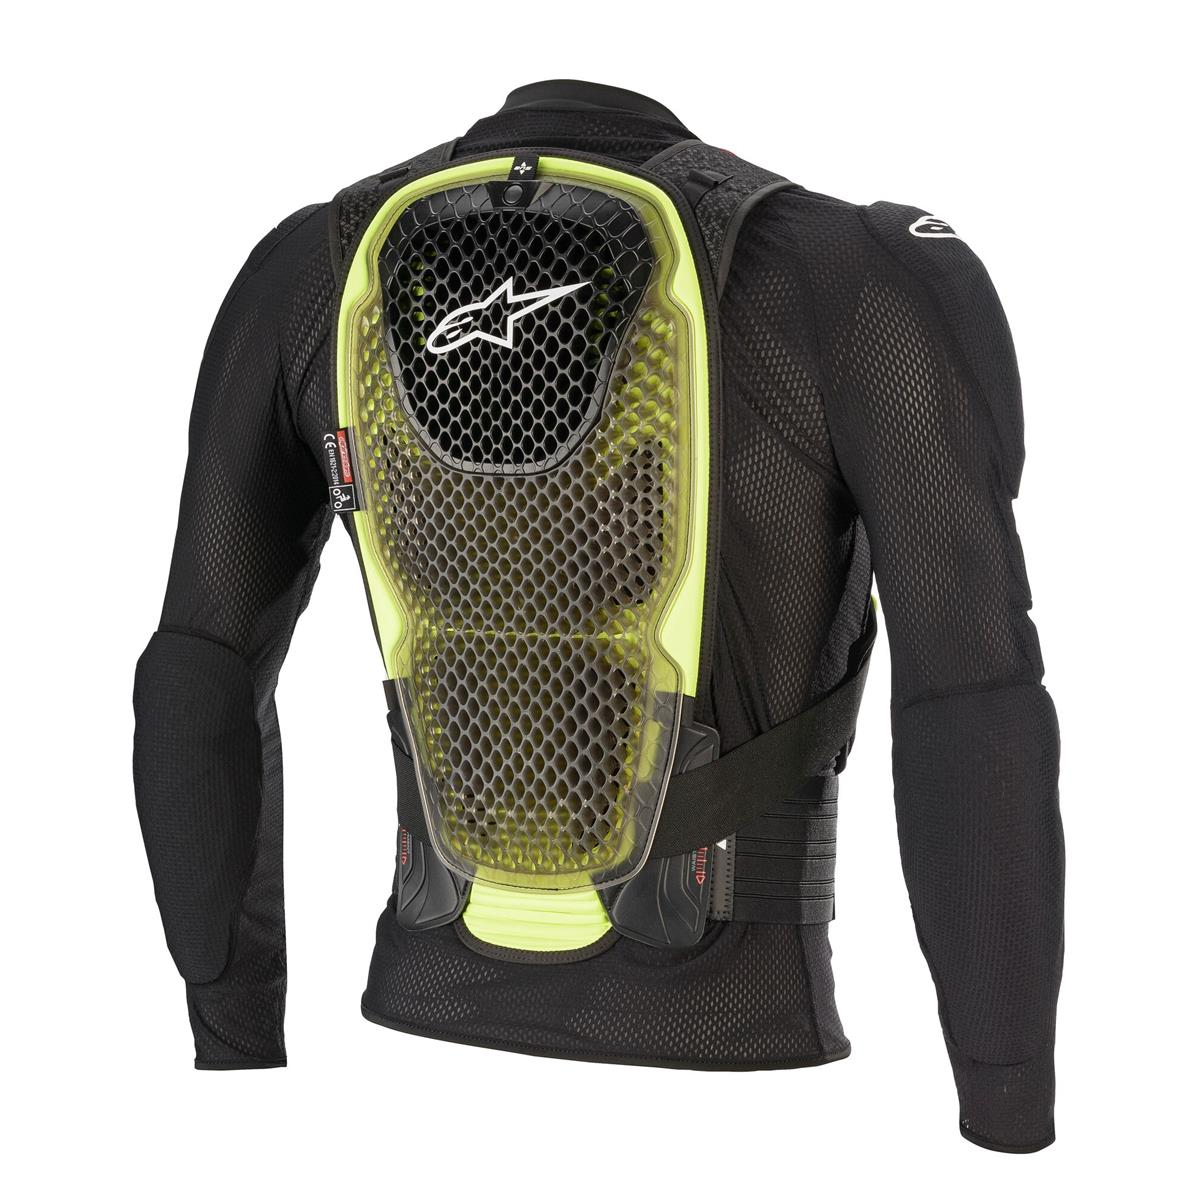 6506620 155 Alpinestars Bionic Pro V2 Protection Jacket Black Yellow Gilet de Protection Motocross Protektorjacke Enduro BMX Downhill Beschermingsjas Harnas